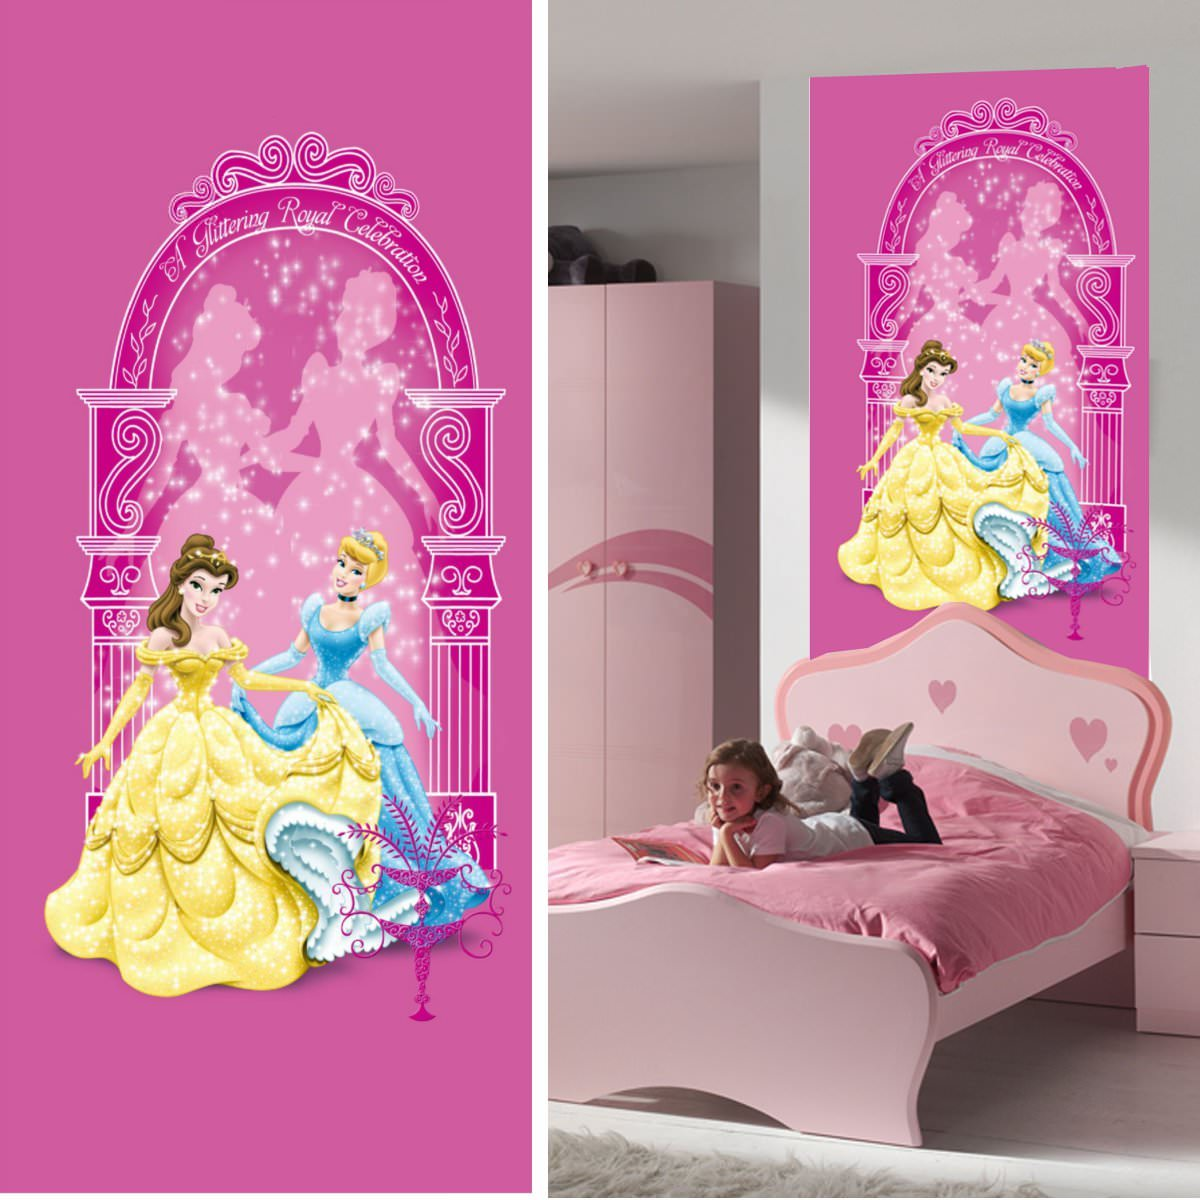 disney princesse d coration murale poster de porte papier peint disney princesse 202x90 cm. Black Bedroom Furniture Sets. Home Design Ideas